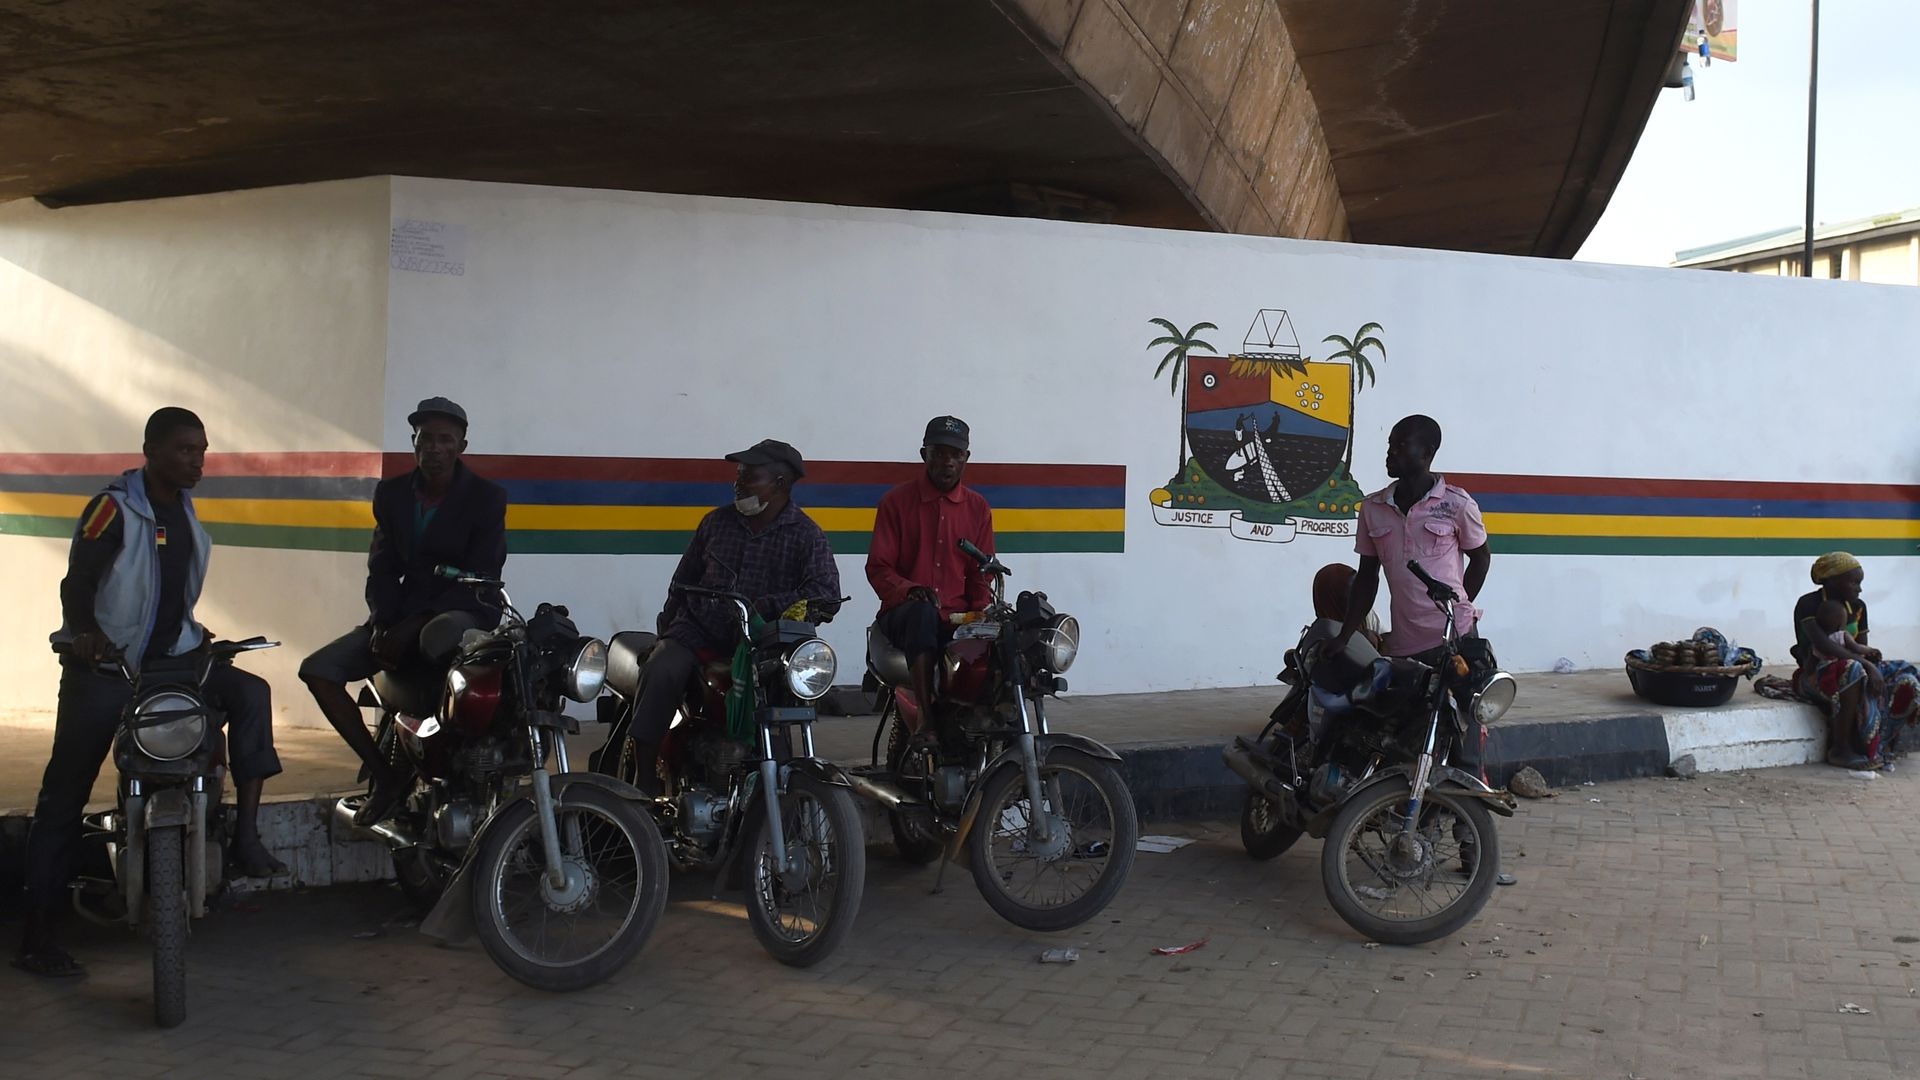 motorbike taxis waiting for passengers in the shade under an overpass